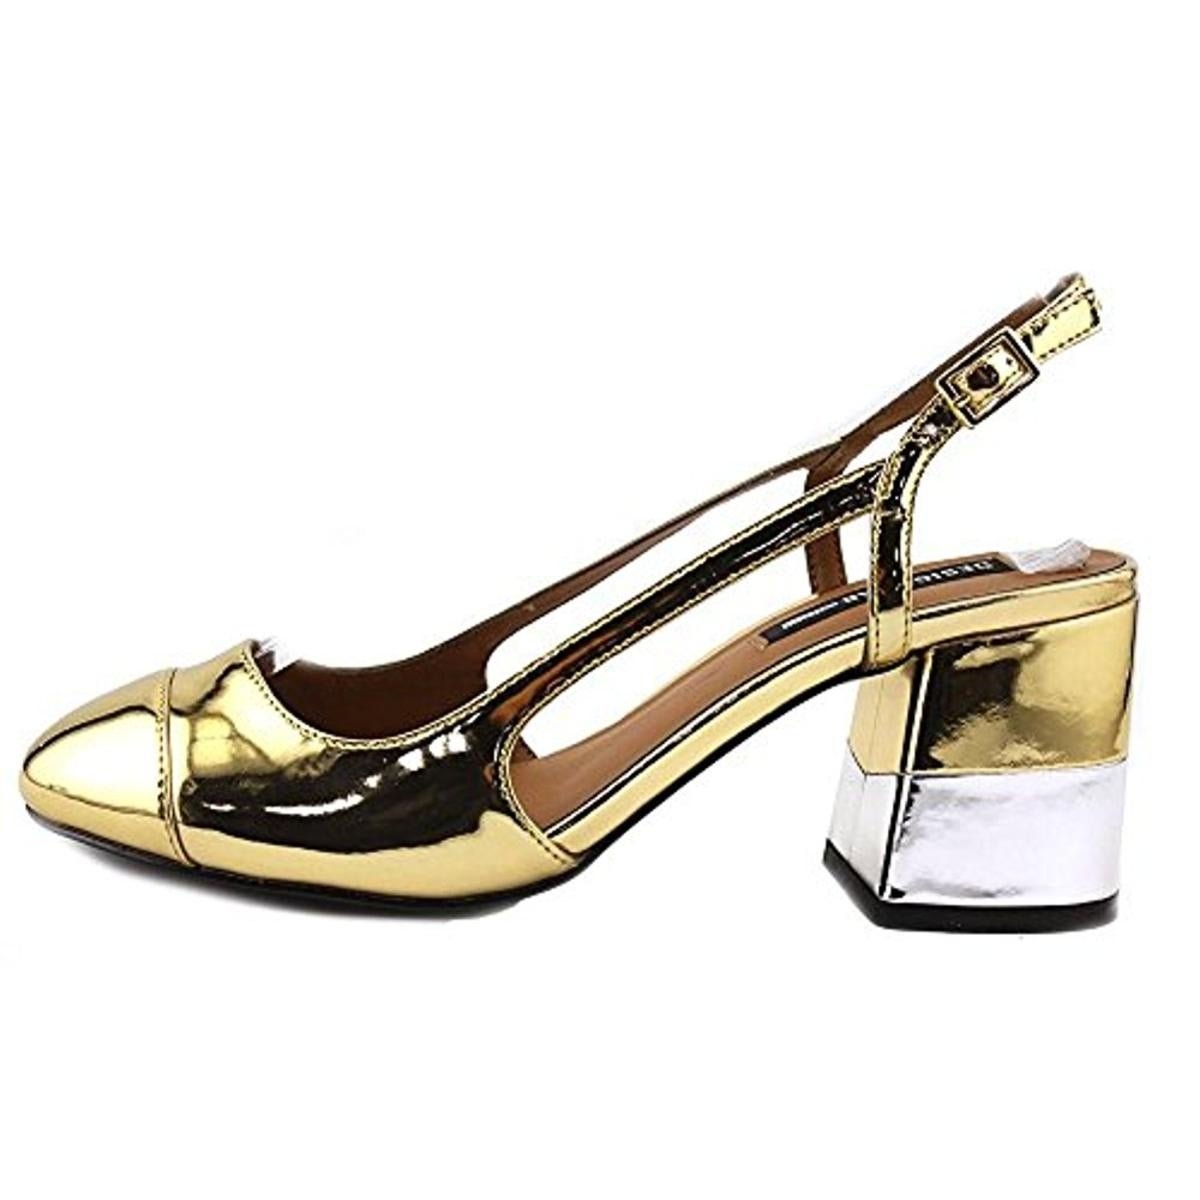 6915e9280c Shop Design Lab Womens Tifa Block Heels Metallic Slingback - Free Shipping  On Orders Over $45 - Overstock - 21137455